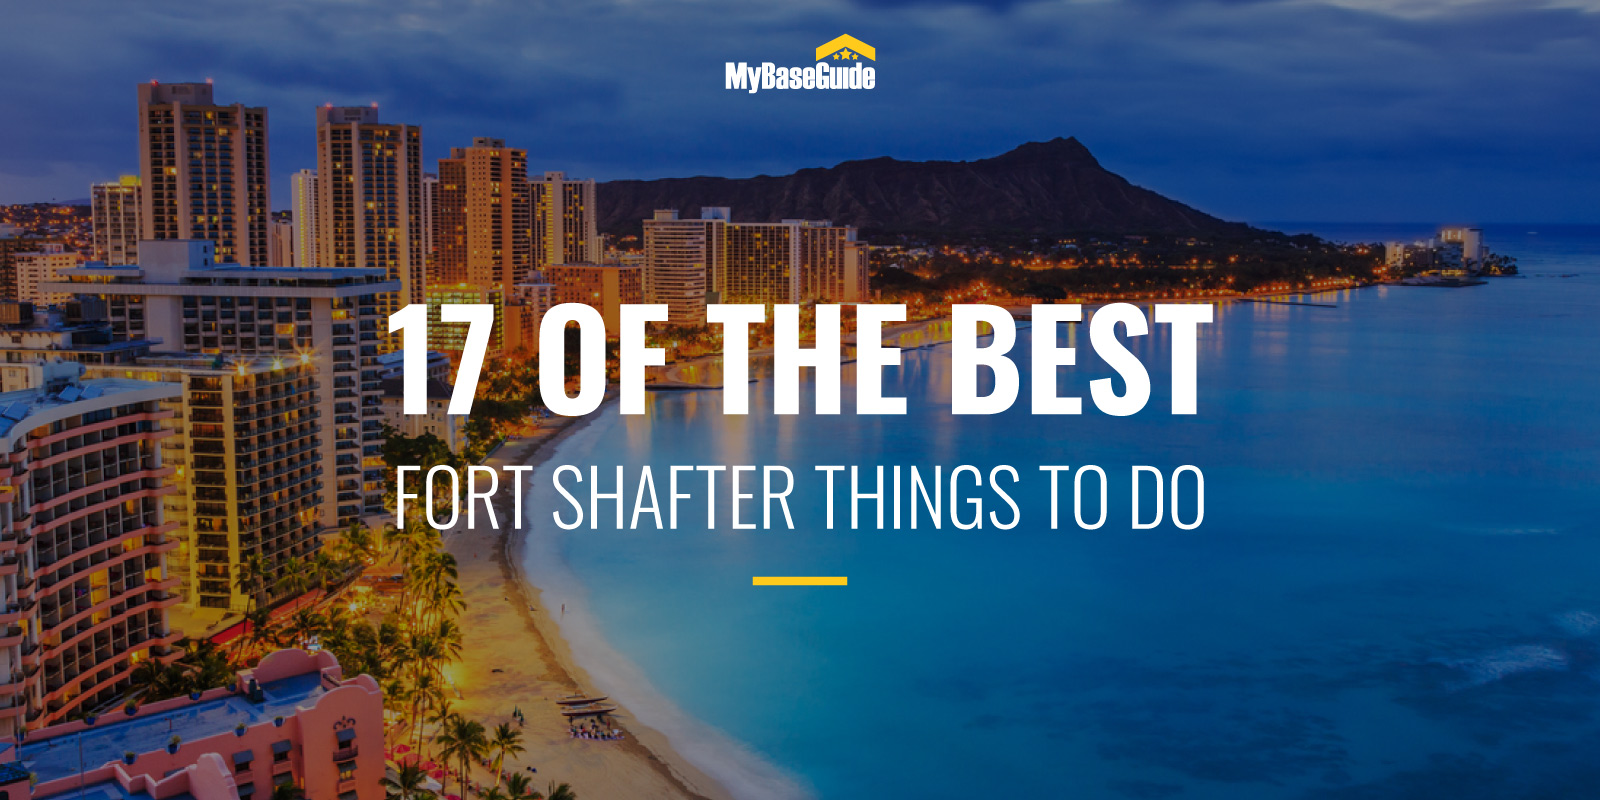 17 Of the Best Fort Shafter Things to Do